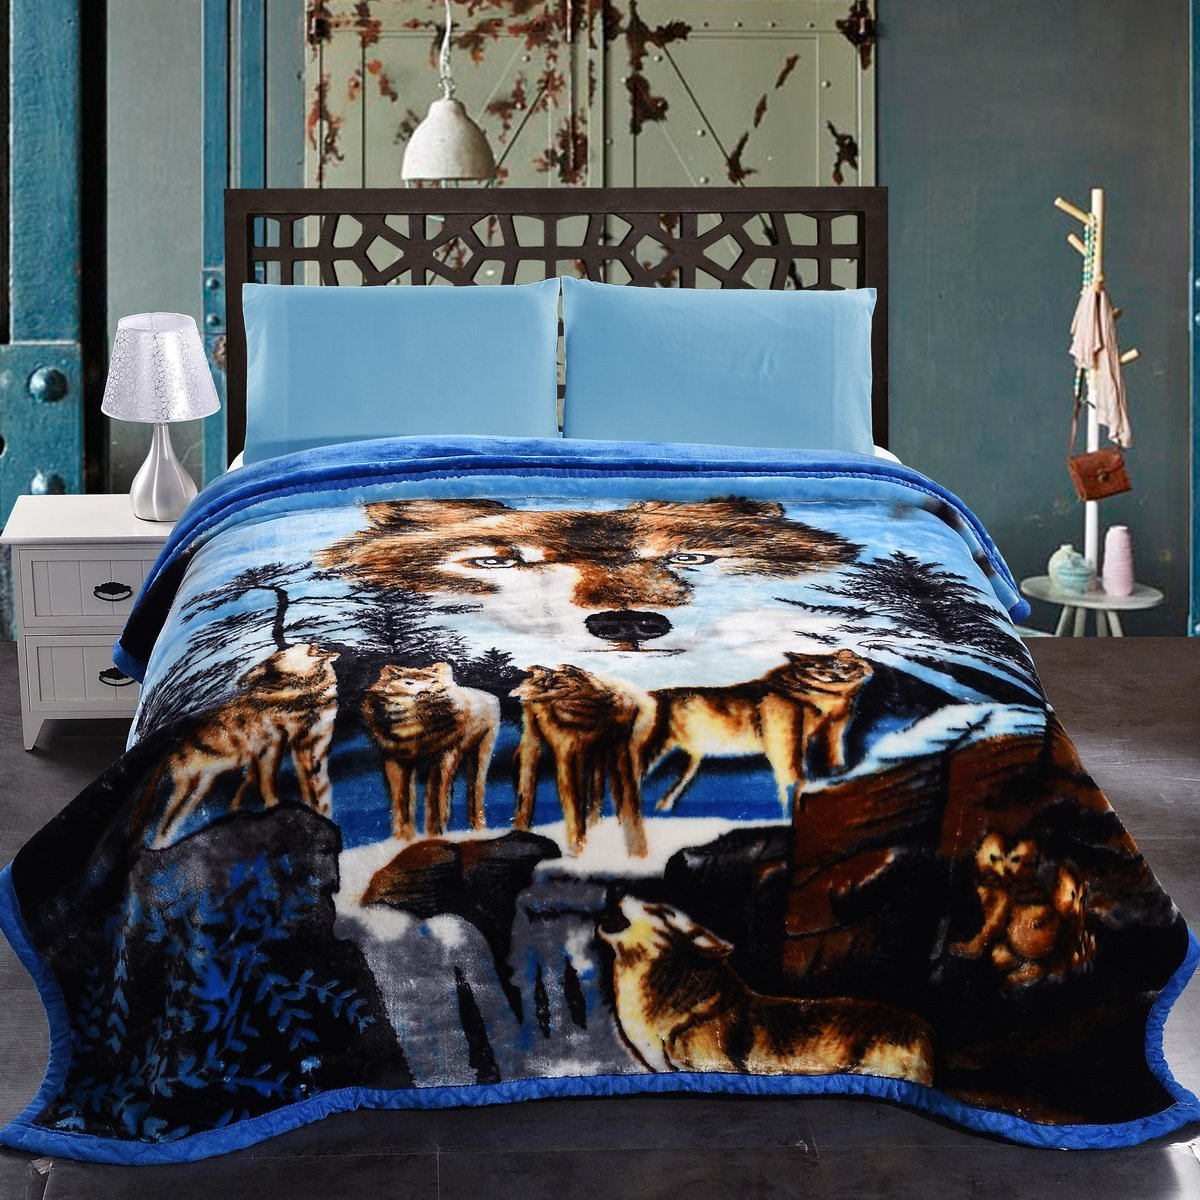 Blue Wolf Mink Blanket - King Size Heavy Korean Style JML Plush Blankets With 2 Ply Printed